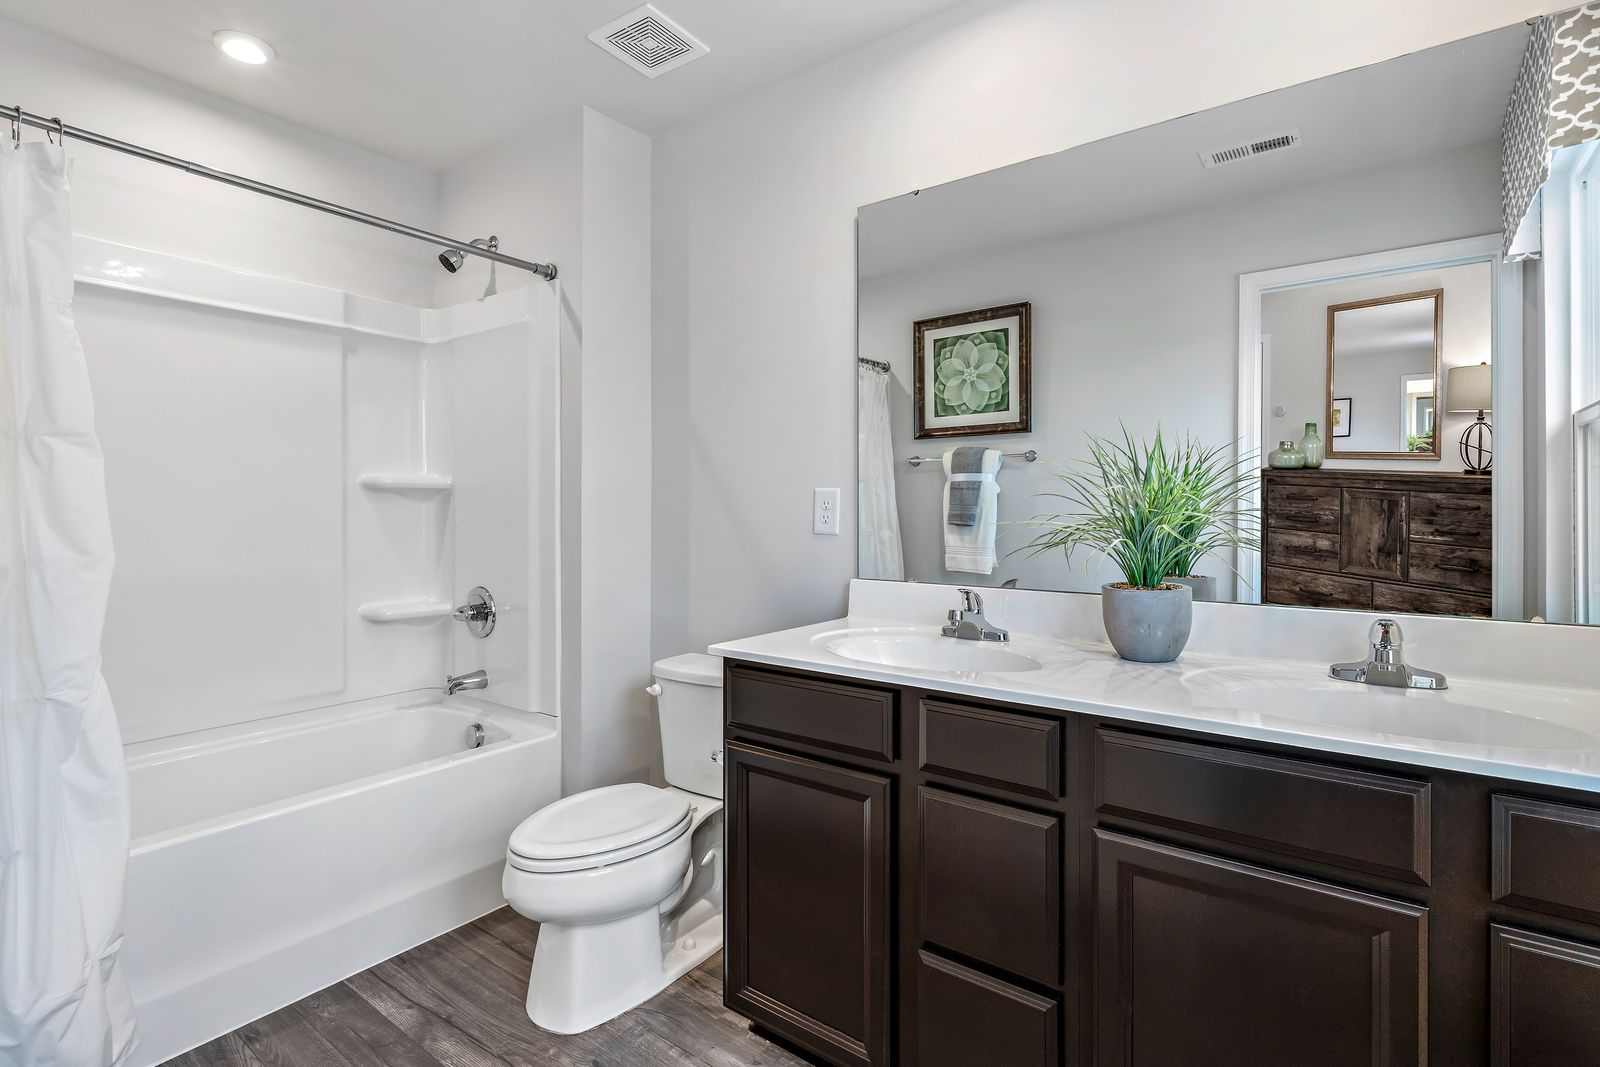 Bathroom featured in the Aspen By Ryan Homes in Charlotte, NC